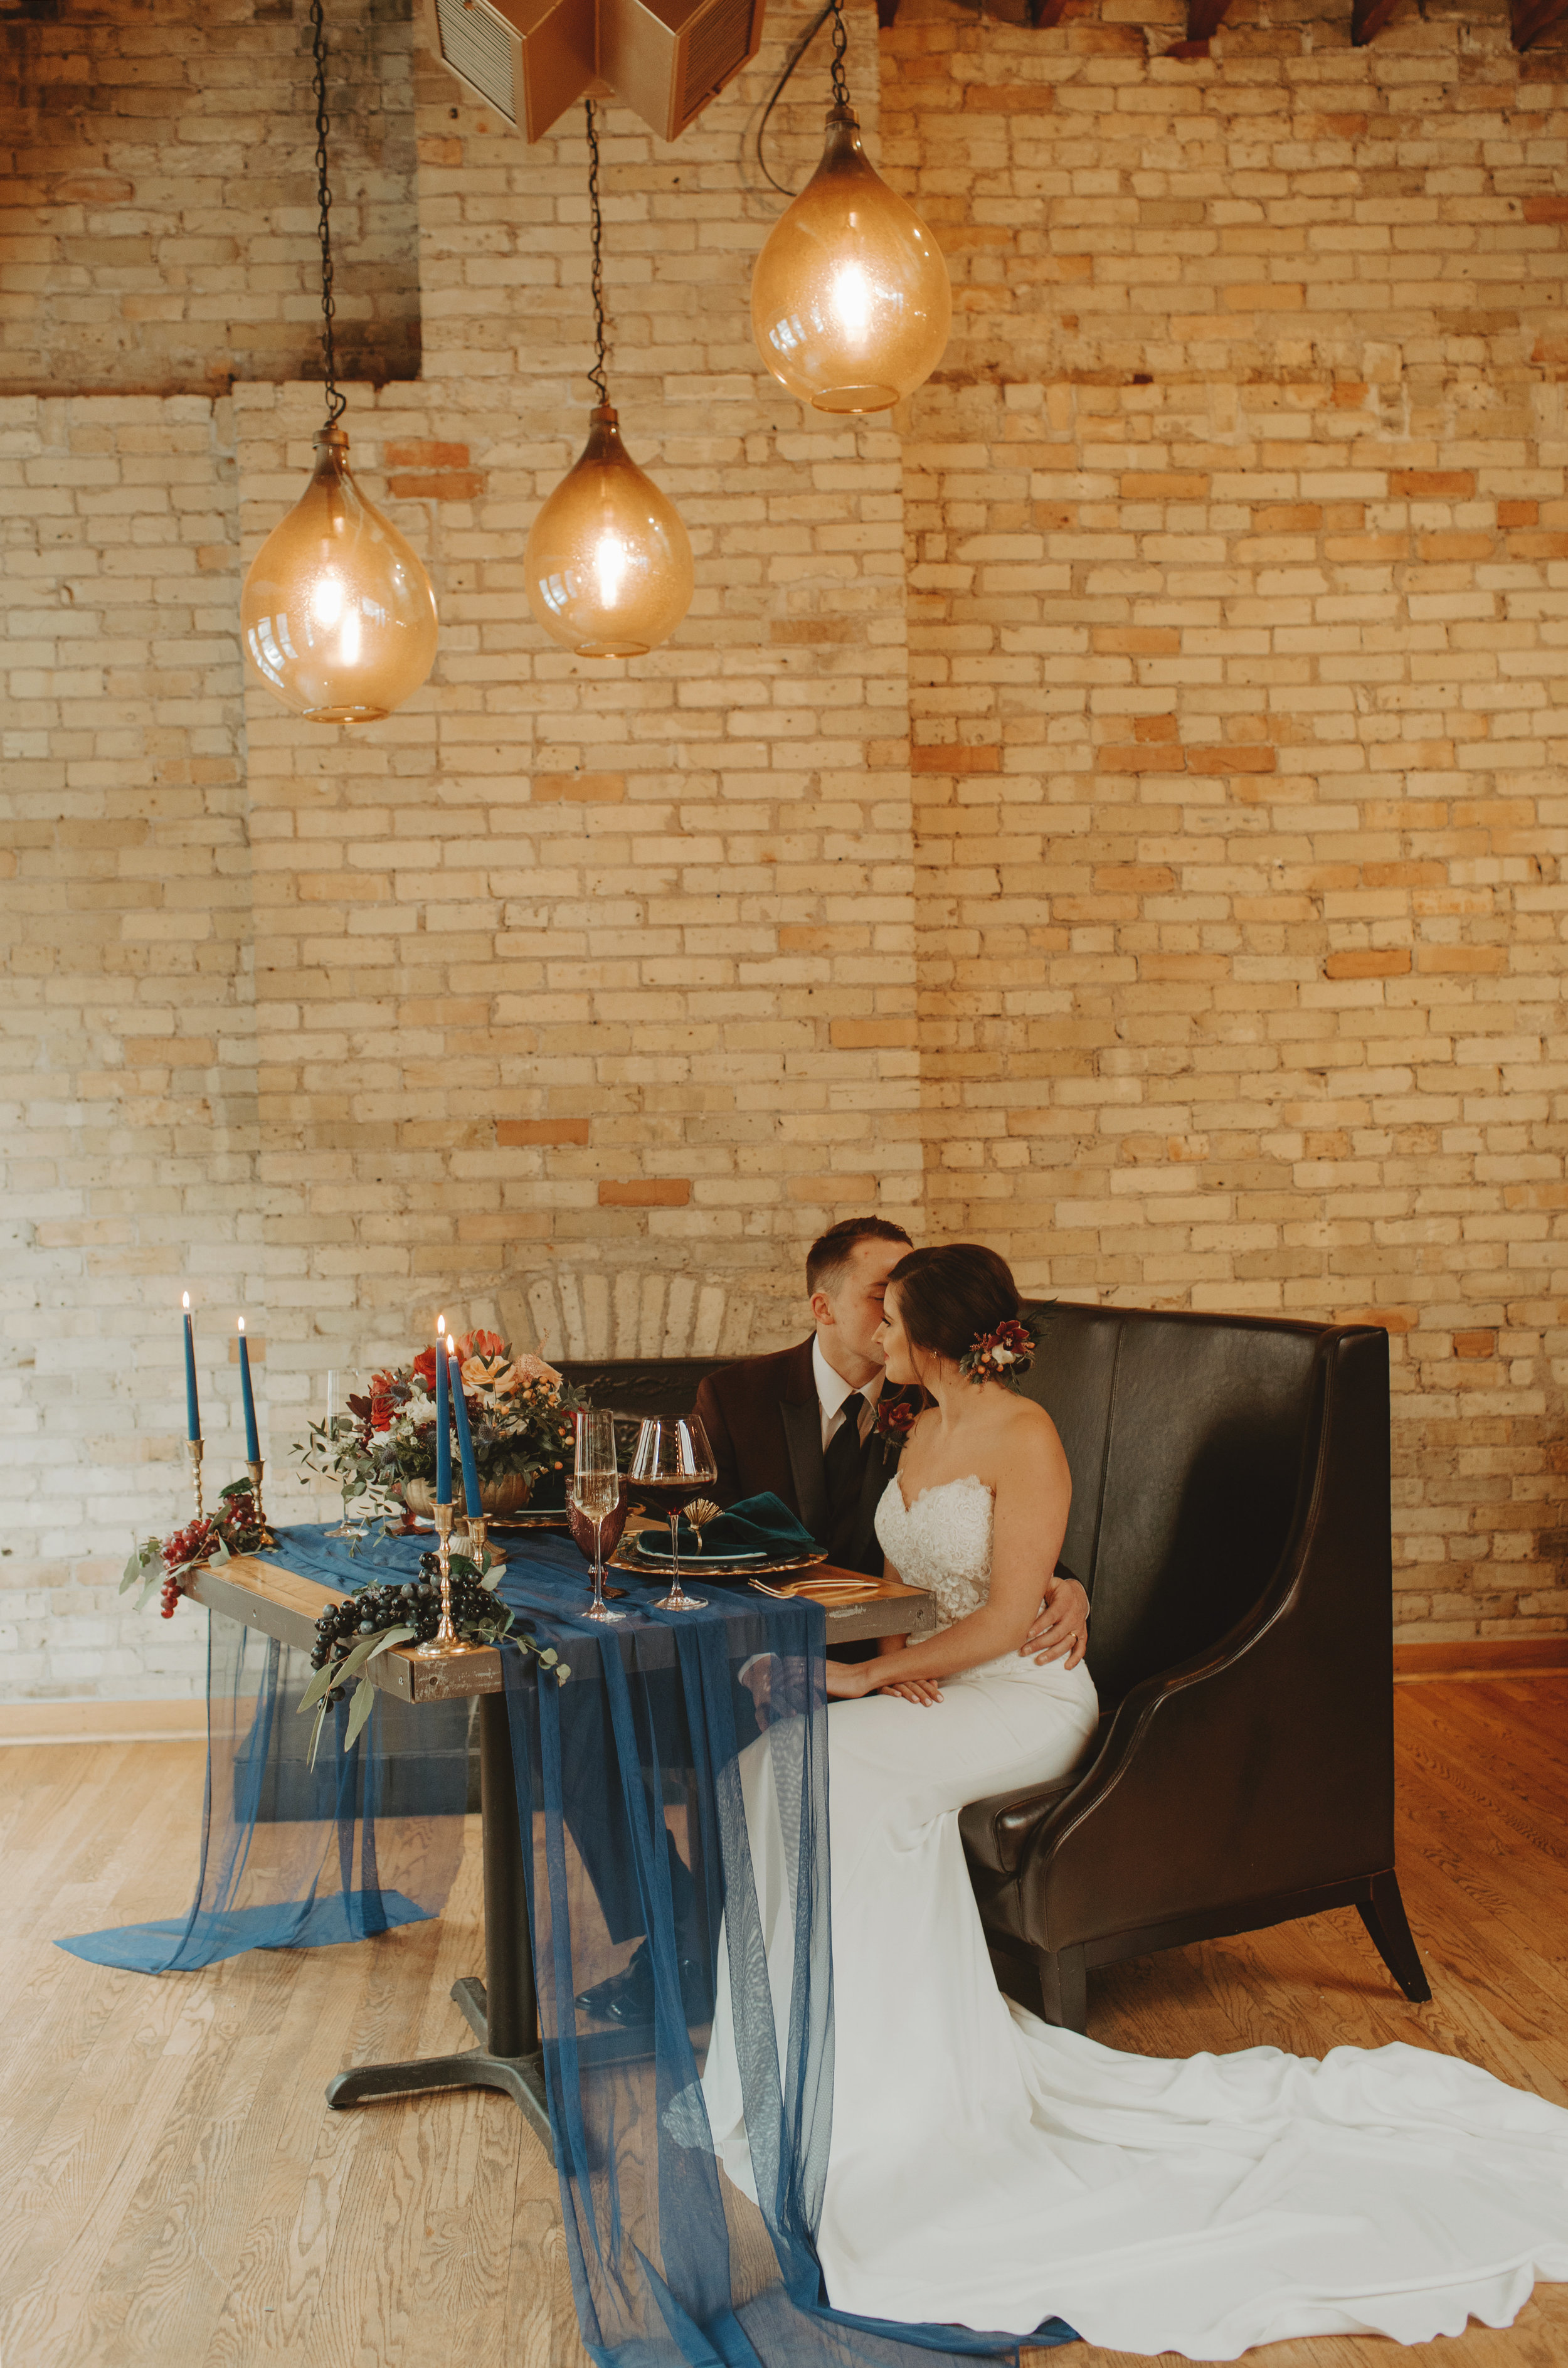 Emma and Buster Elopement - Bride and Groom at Sweetheart Table - by Nikki Kate Photography.jpg